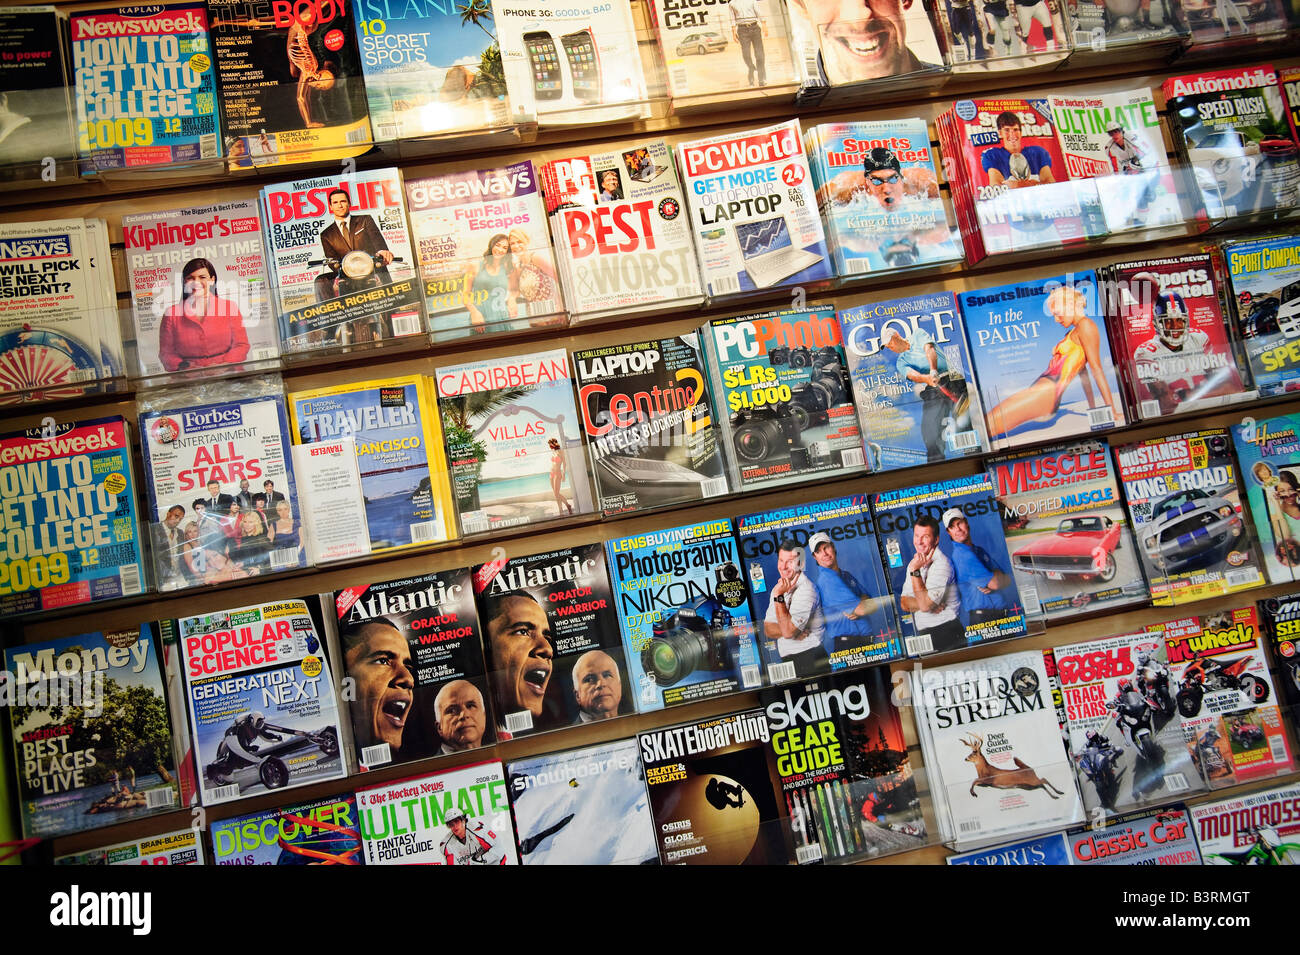 Magazine display at a news stand - Stock Image